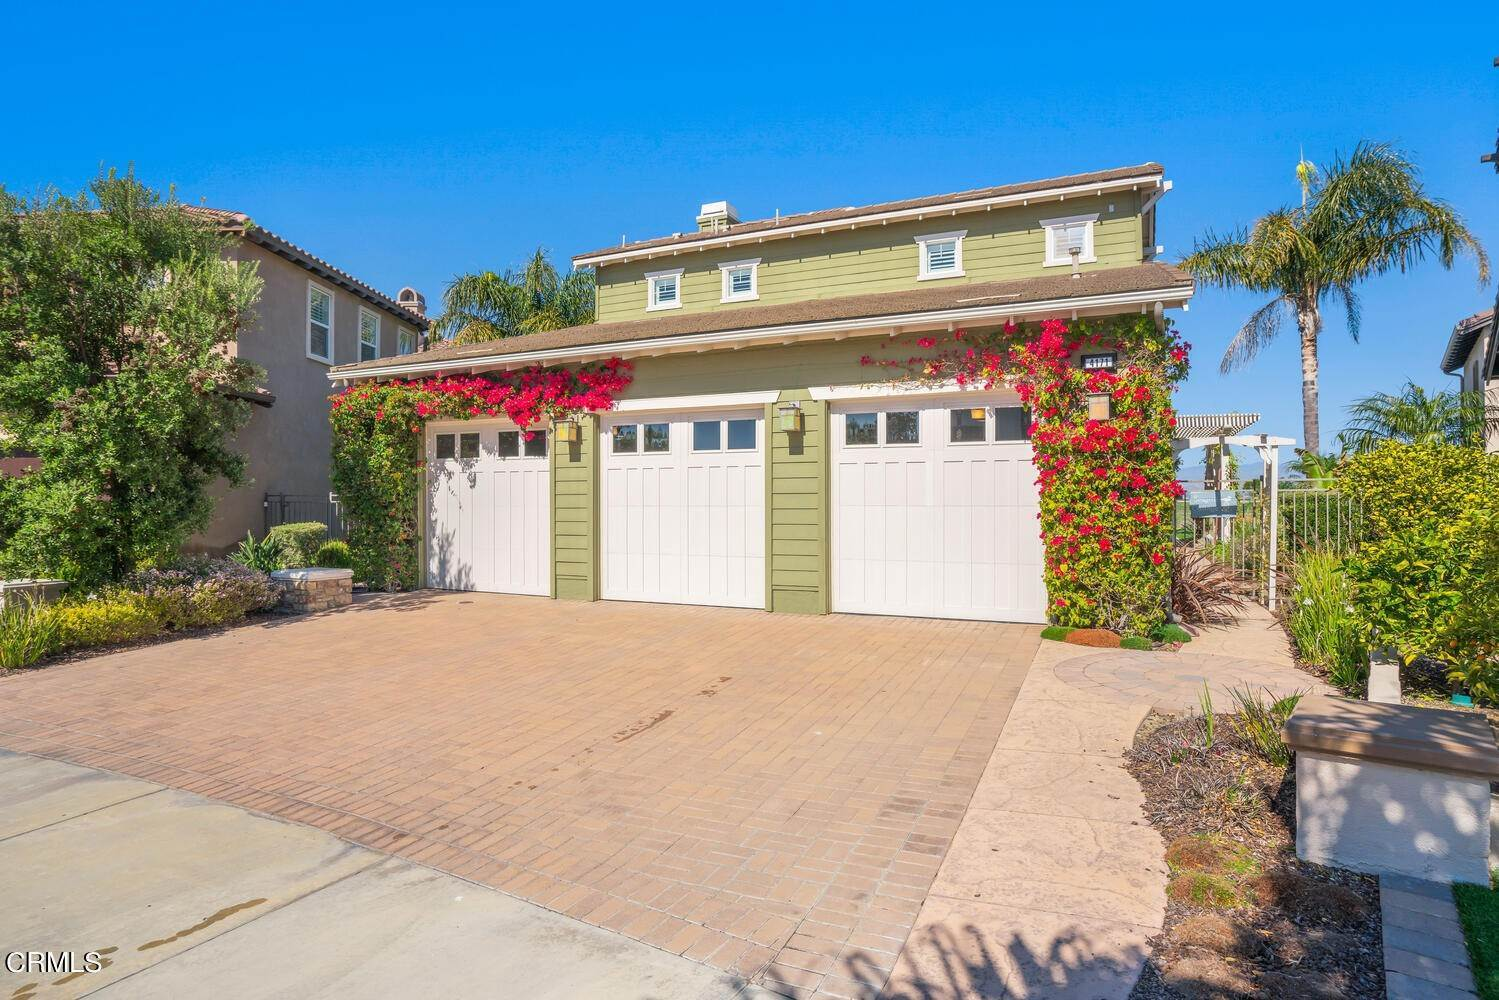 44. Single Family Homes for Sale at 4171 Adriatic Street Oxnard, California 93035 United States